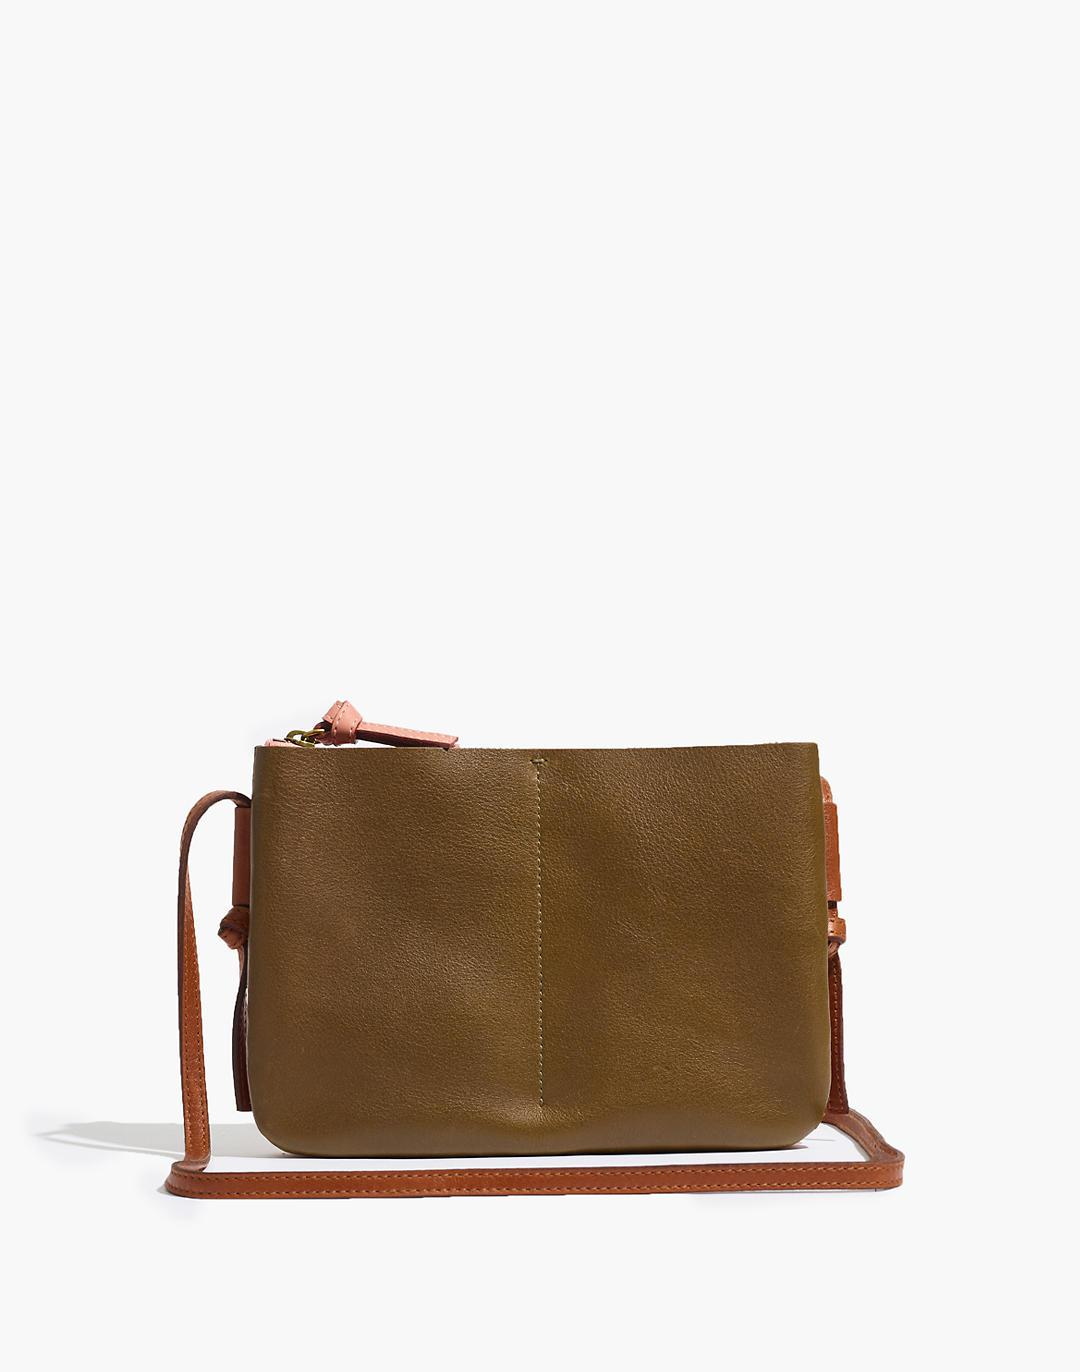 The Knotted Crossbody Bag in Colorblock